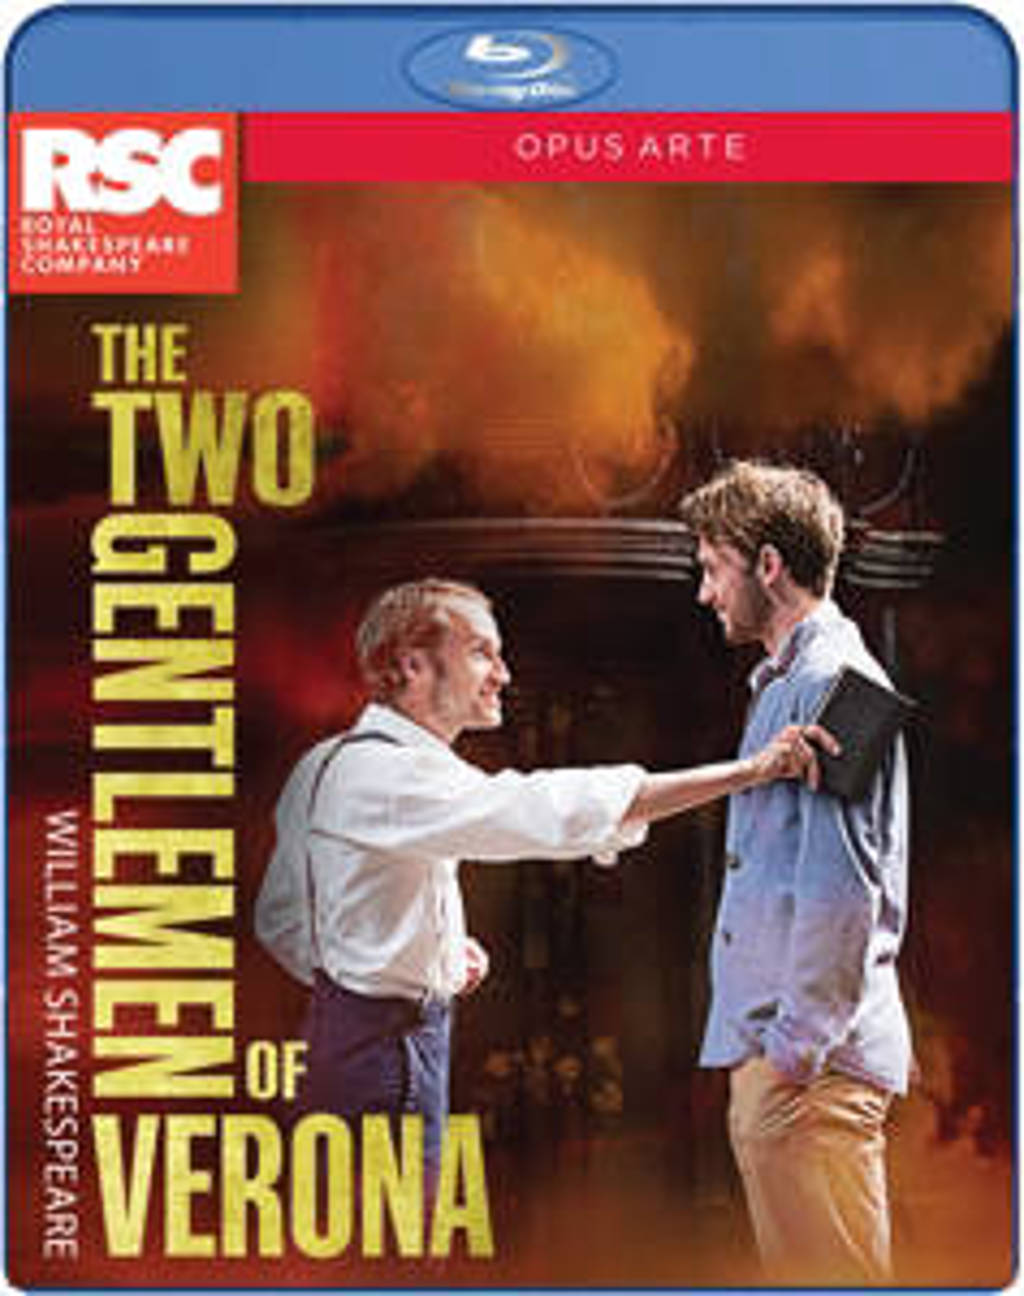 Royal Shakespeare Company - The Two Gentlemen Of Verona (Blu-ray)